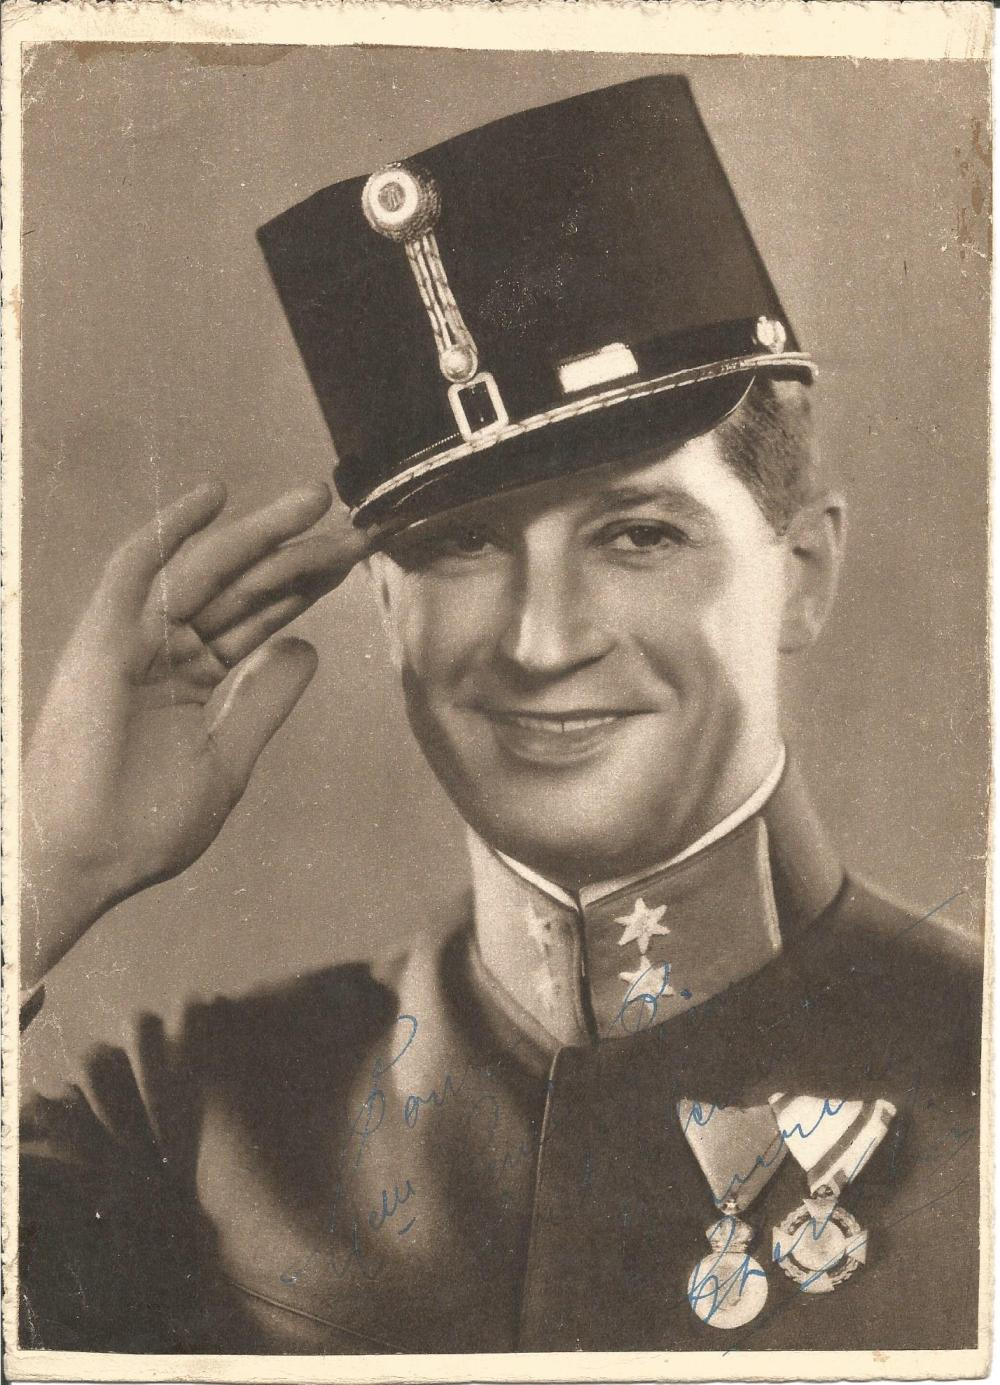 Maurice Chevalier signed 10x7 b/w photo of him in soldier uniform. (September 12, 1888 - January